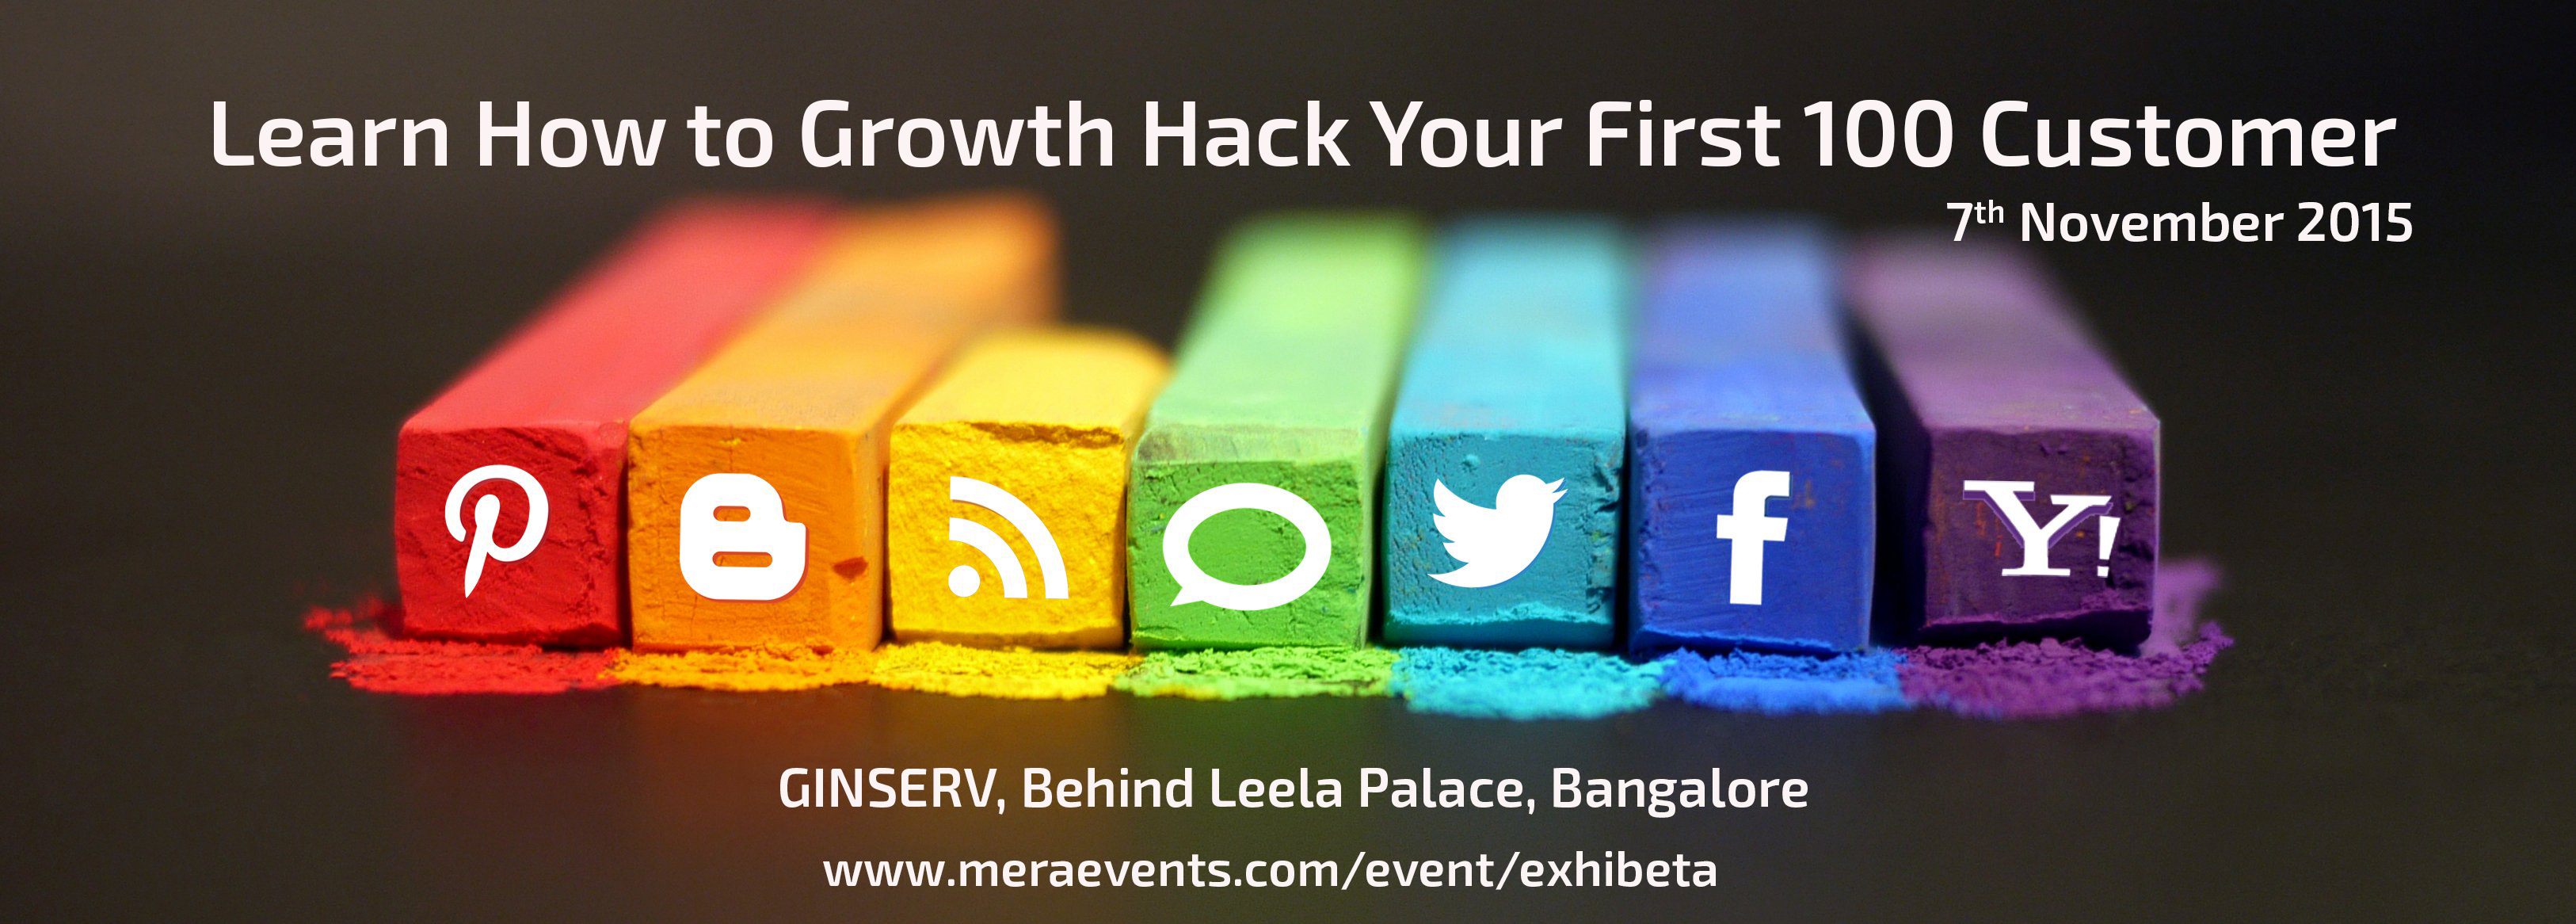 Book Online Tickets for Exhibeta - Unveil your startup, Bengaluru. Exhibeta - Unveil your startup, an event by Betalancer - Community of founders, mentors and betausers.